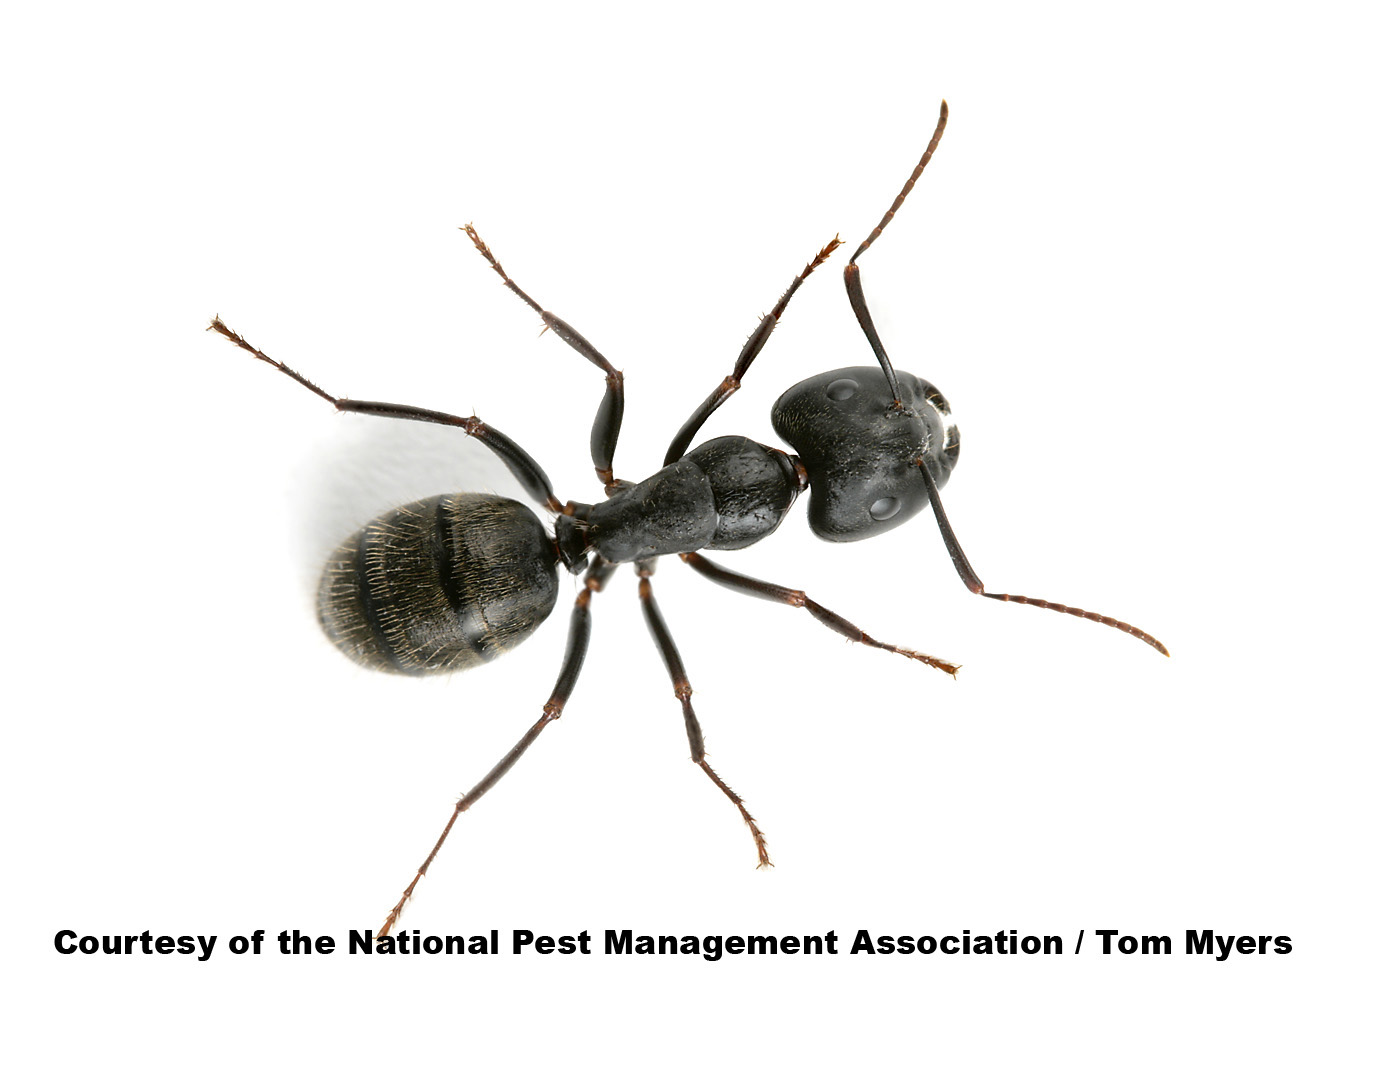 Ants Fun Facts About Ants Amp Ant Information For Kids